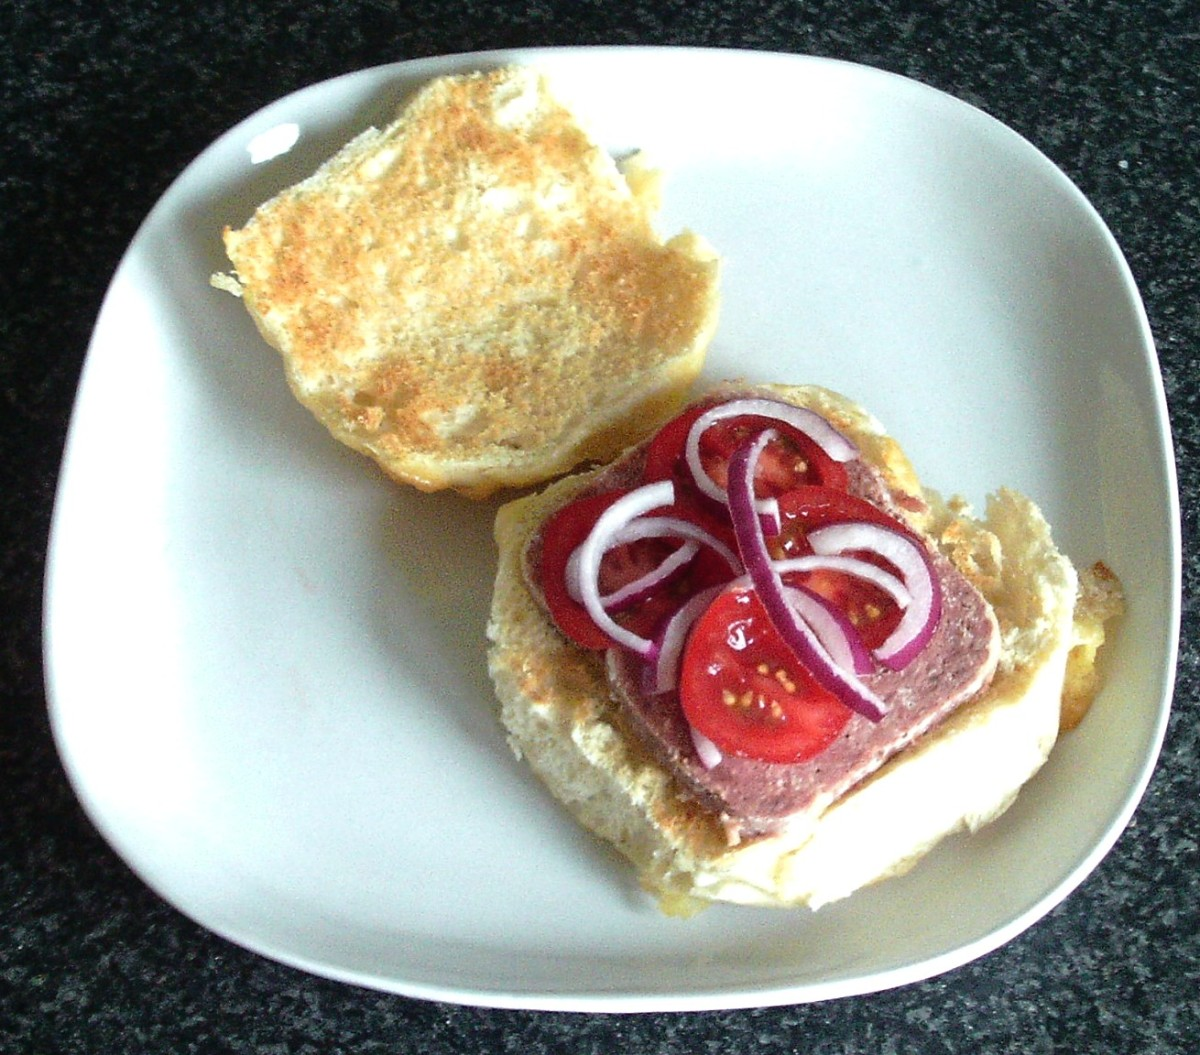 Sliced corned beef, tomato and onion on toasted bread roll